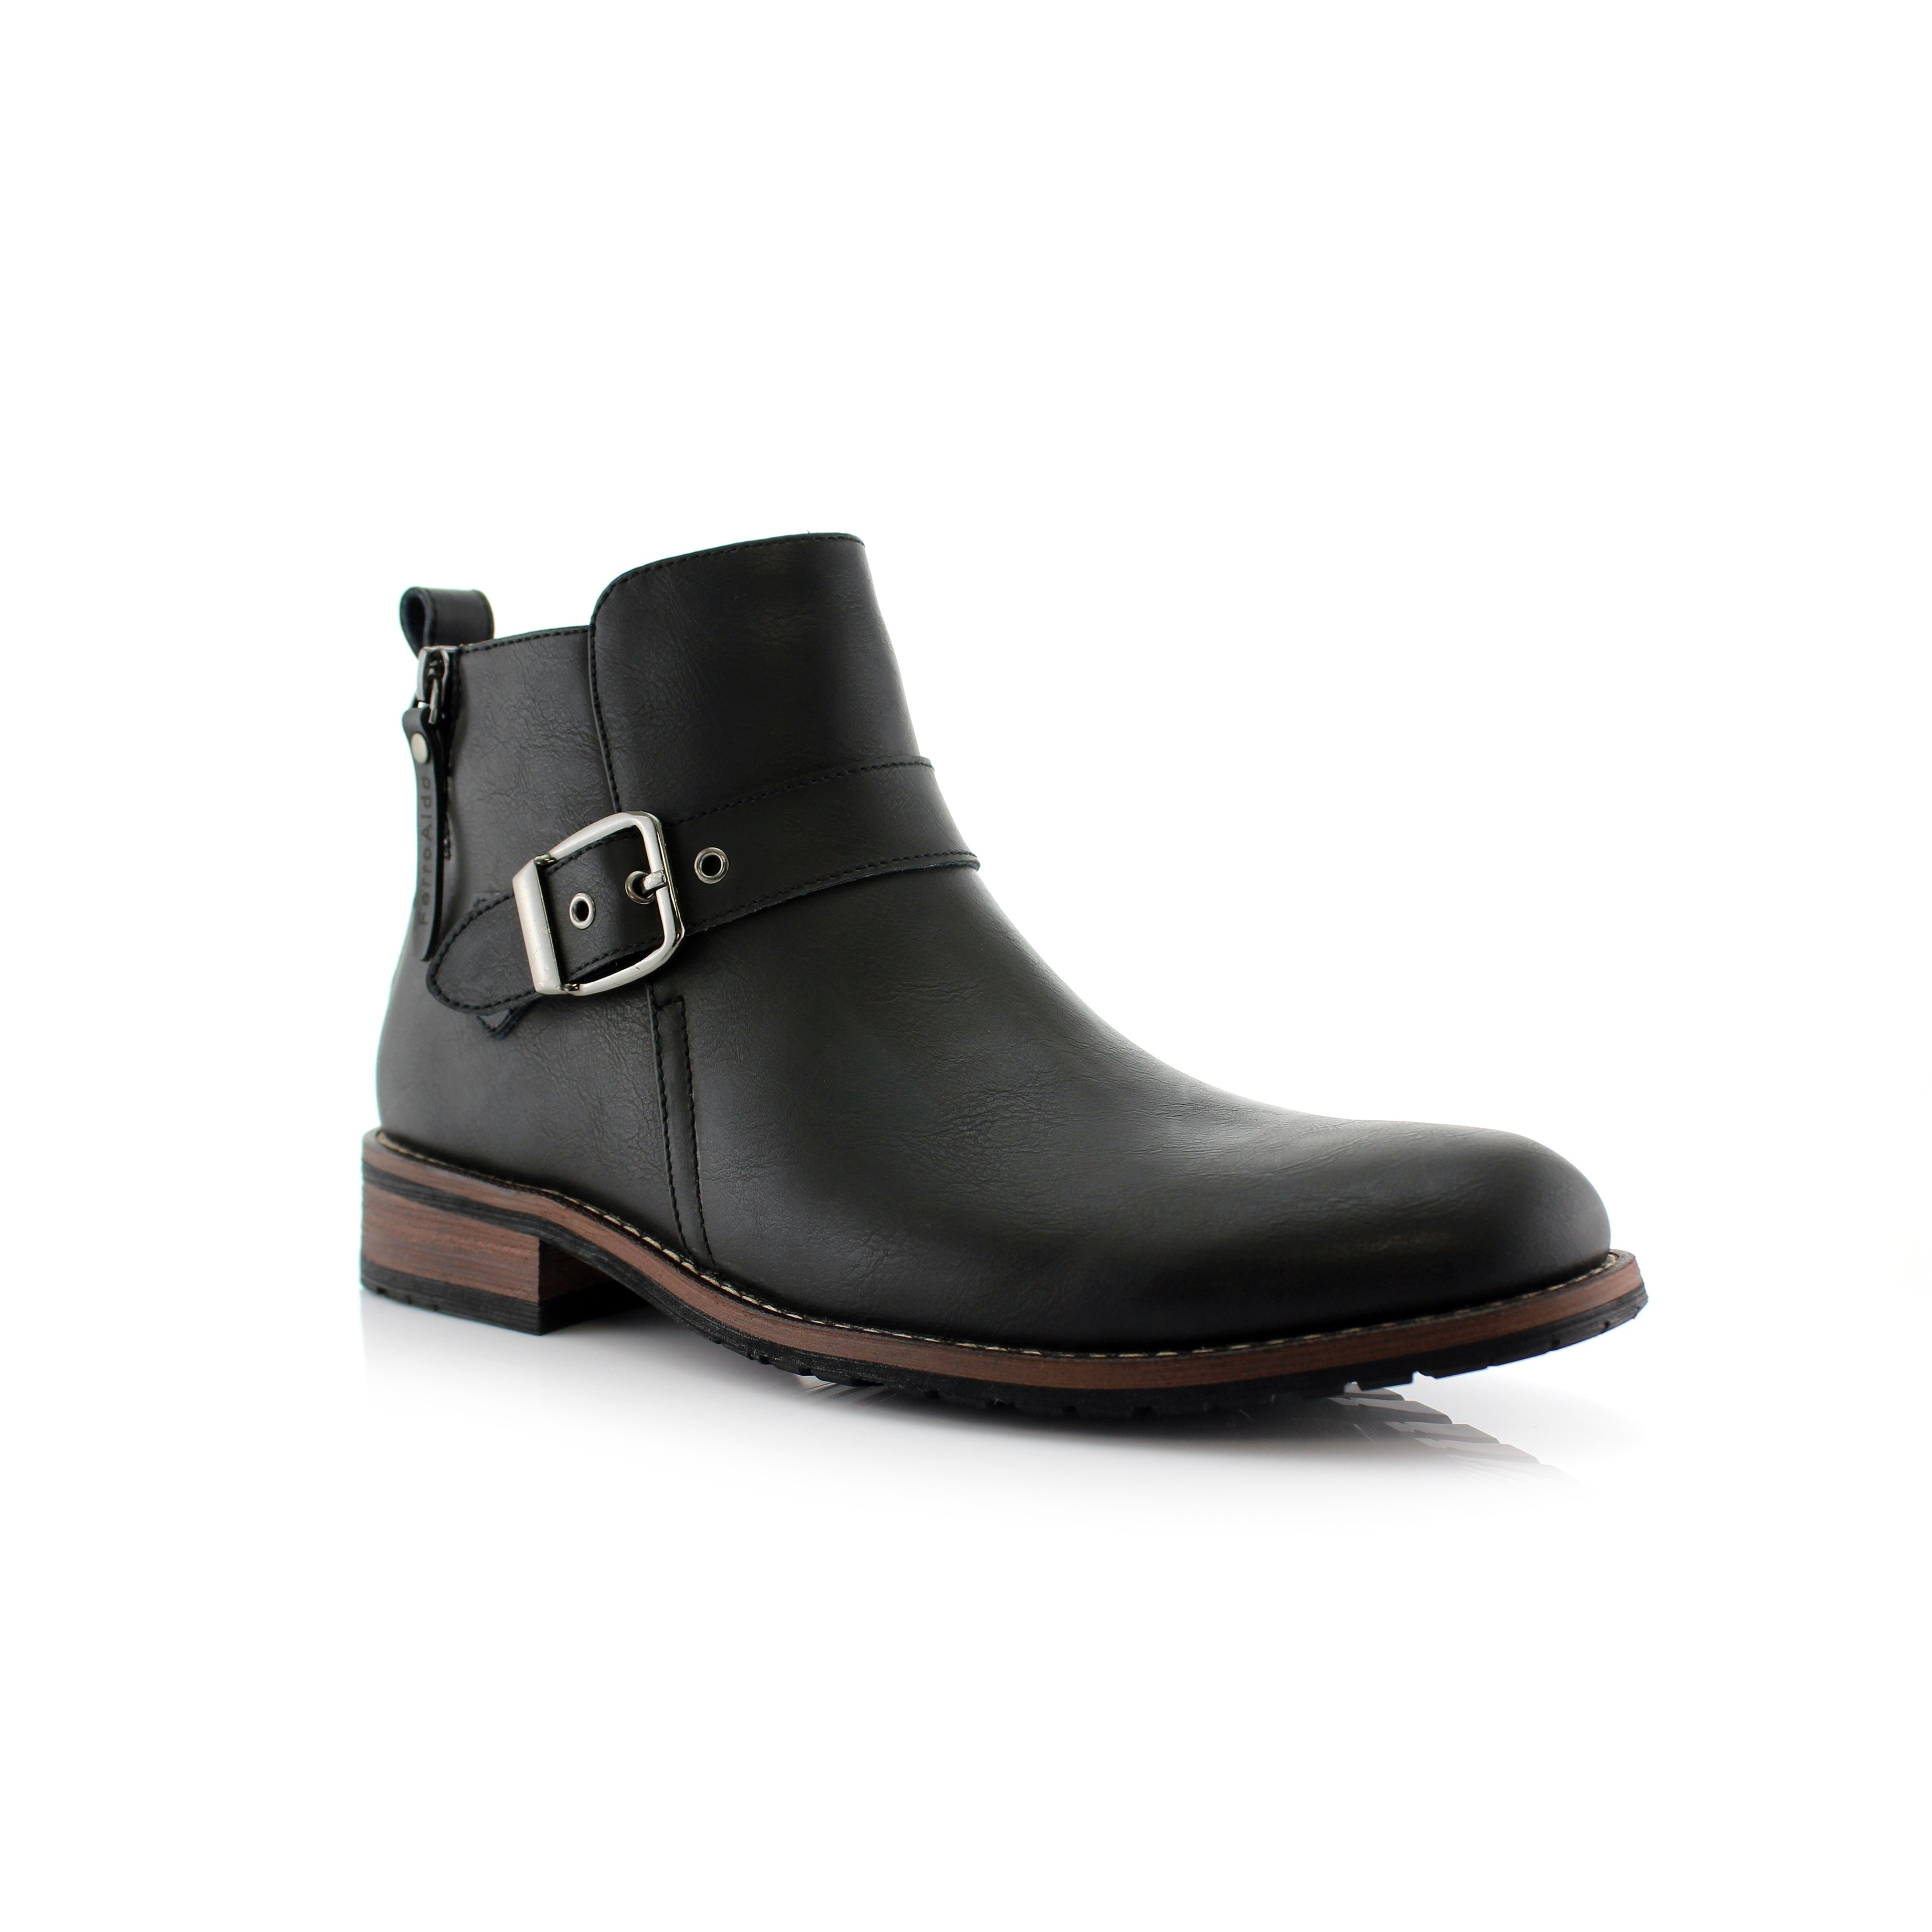 a0ae31dc6d4 Buy Brown Men's Boots Online at Overstock | Our Best Men's Shoes Deals